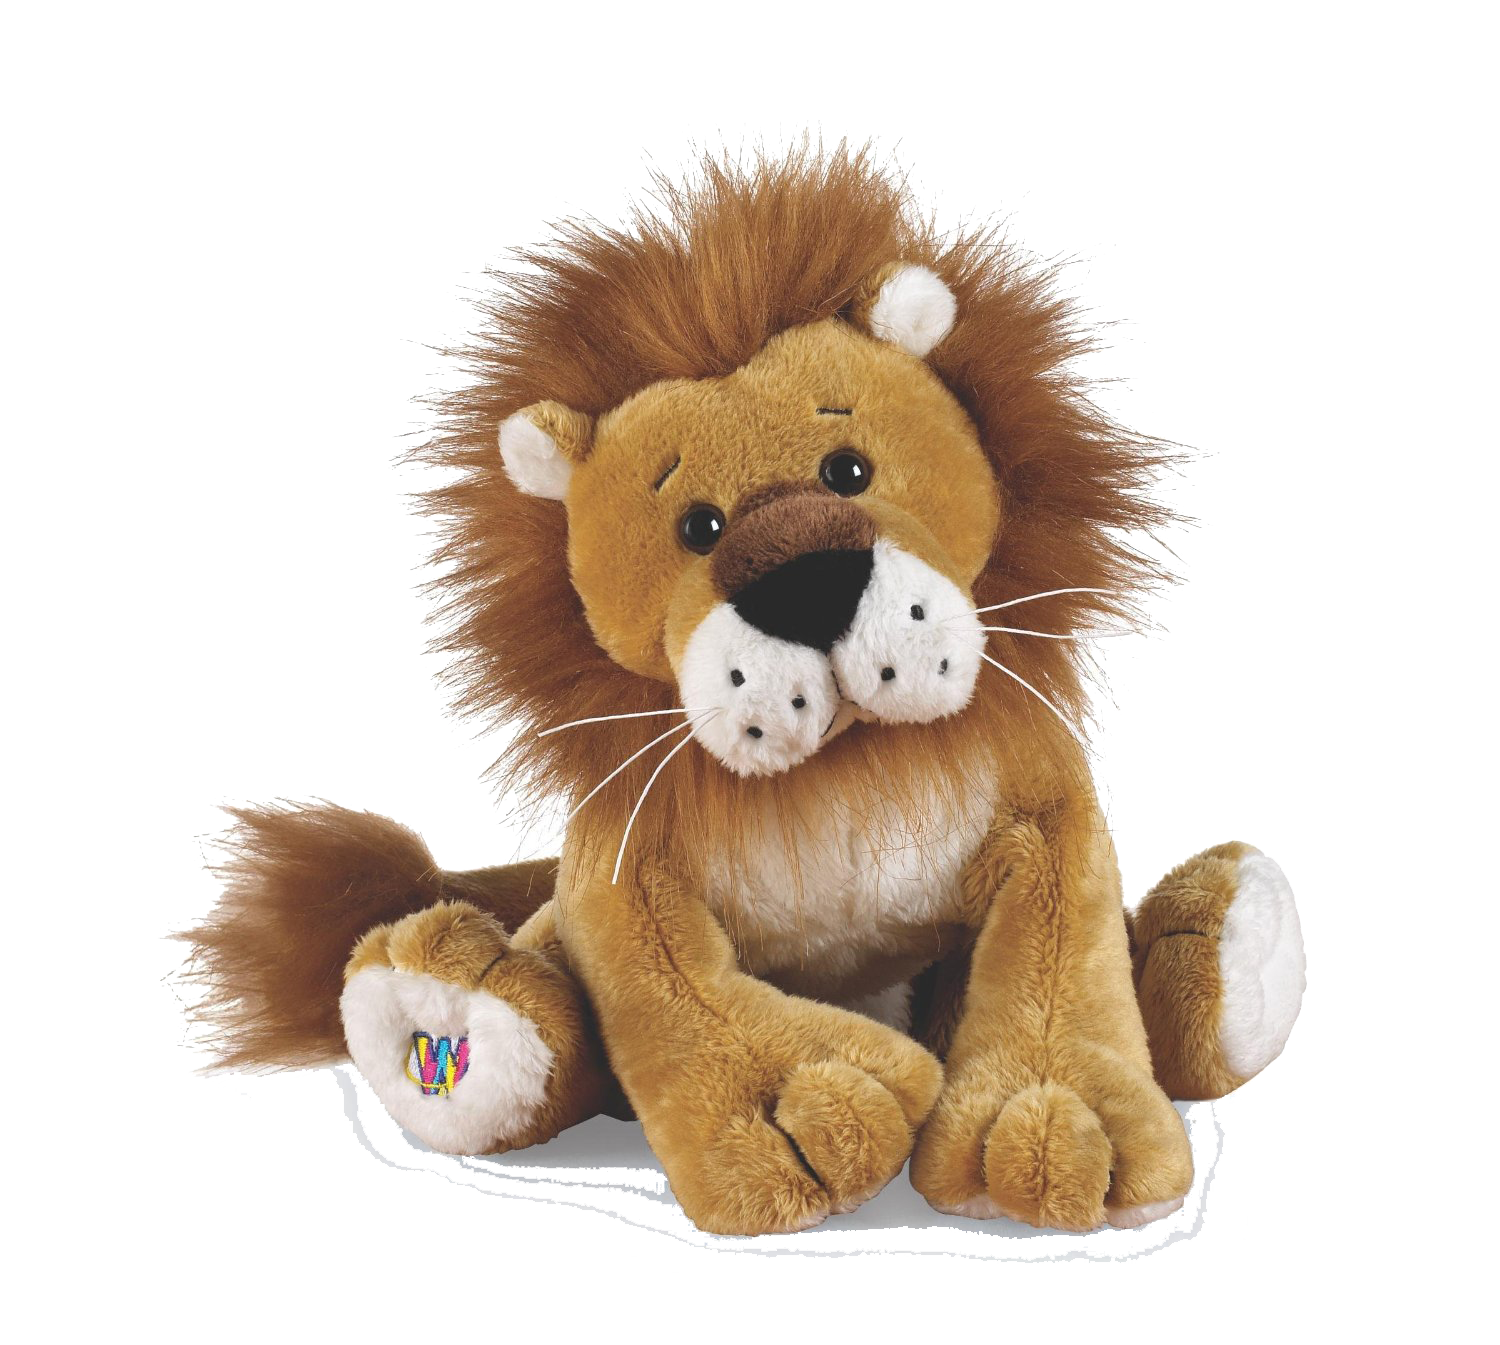 Download Plush Toy Clipart HQ PNG Image | FreePNGImg